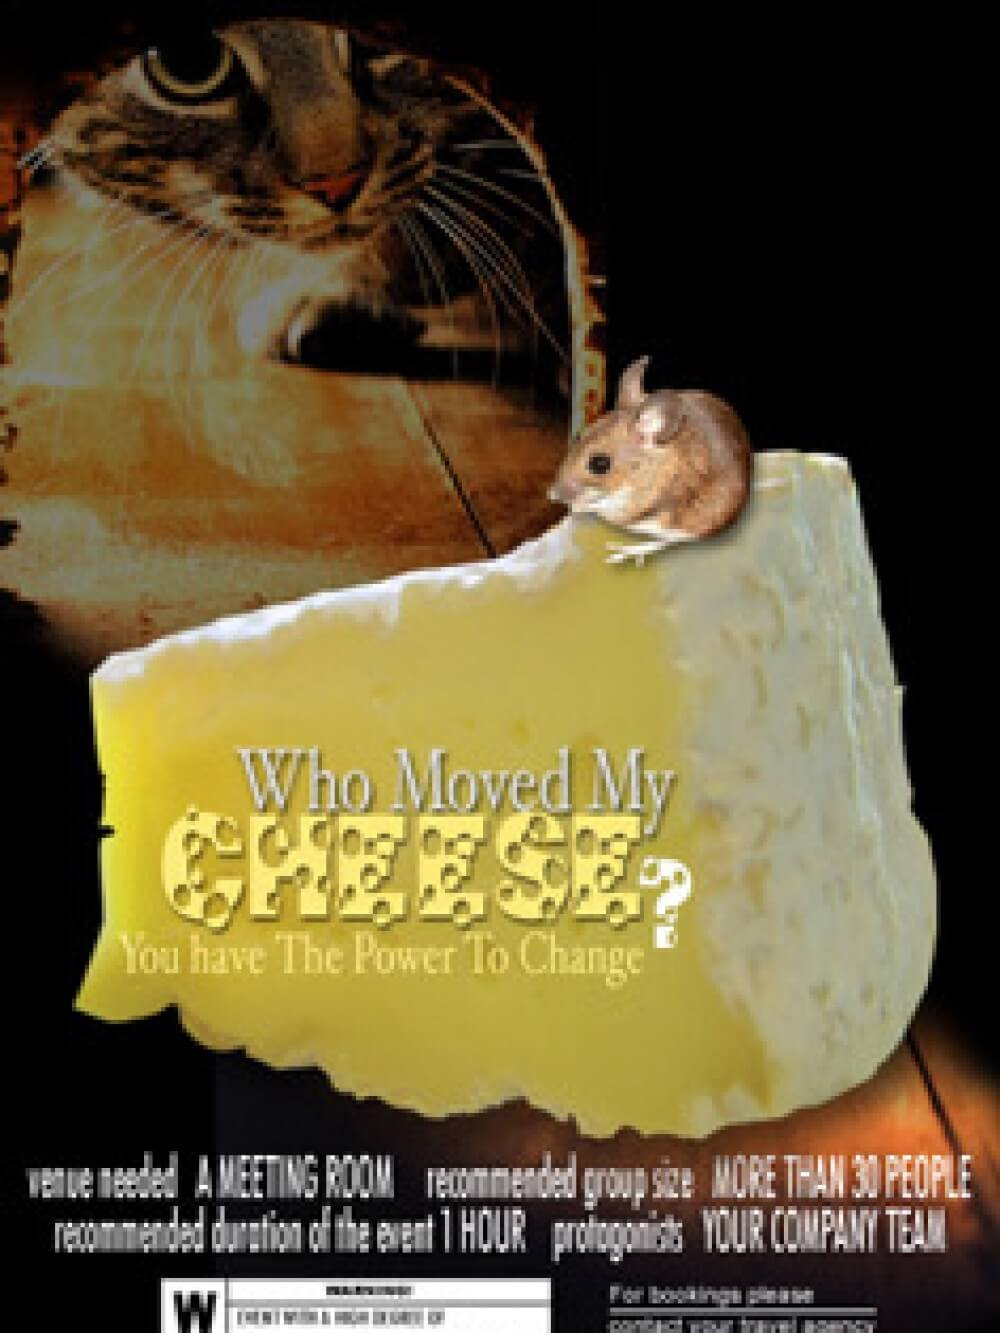 who_moved_my_cheese_vertical_web